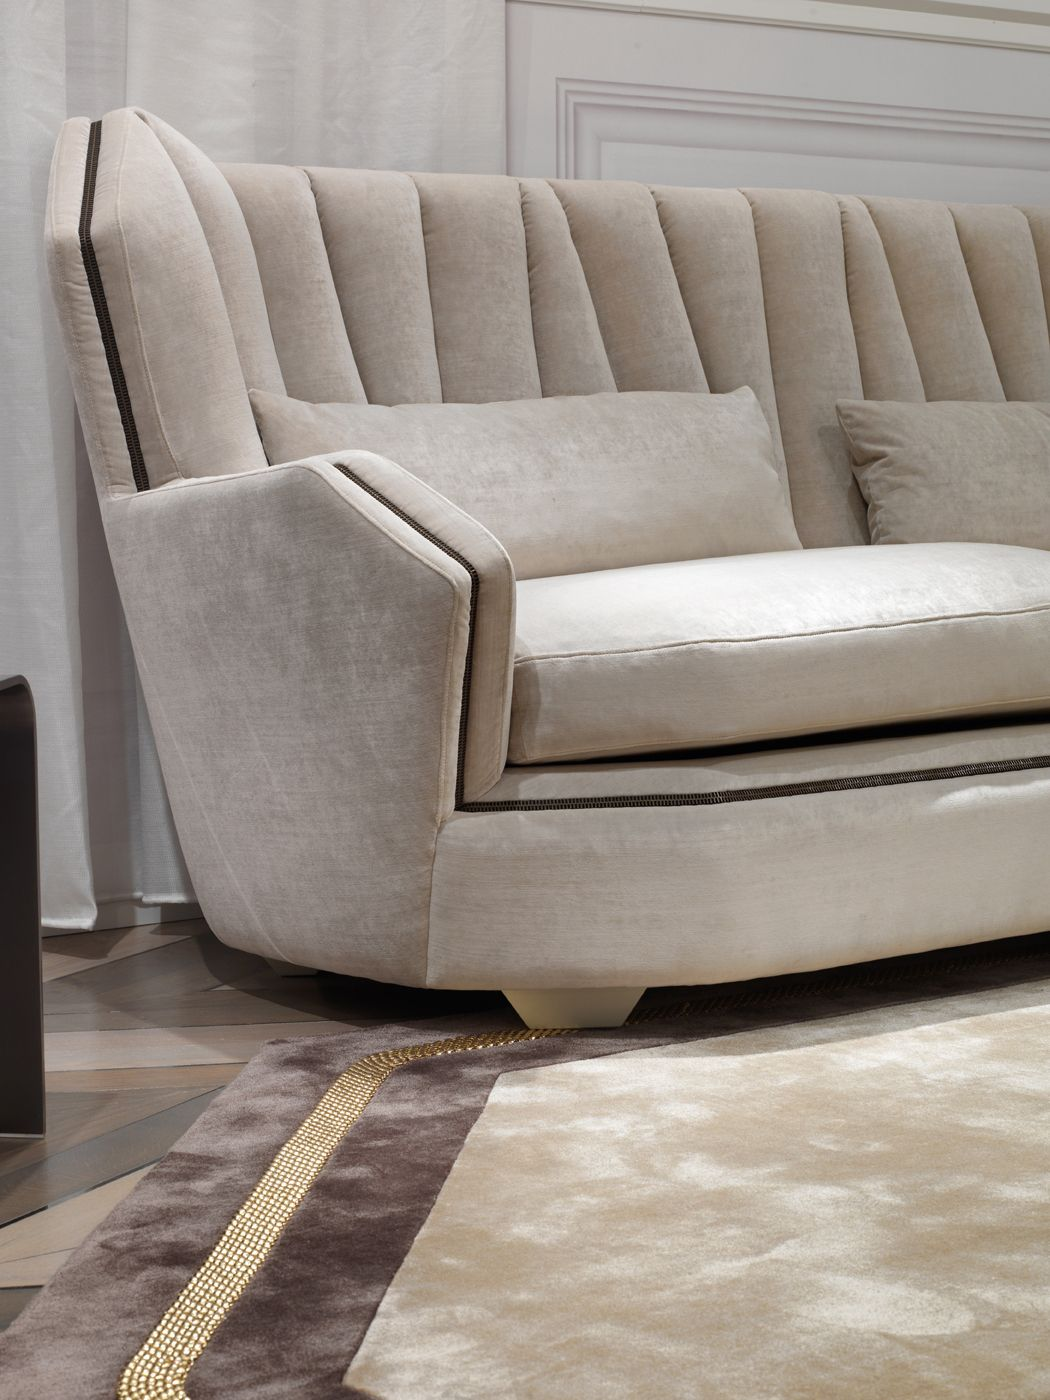 Muebles Capitol Hemingway Livingroom Furniture Pinterest Muebles Muebles